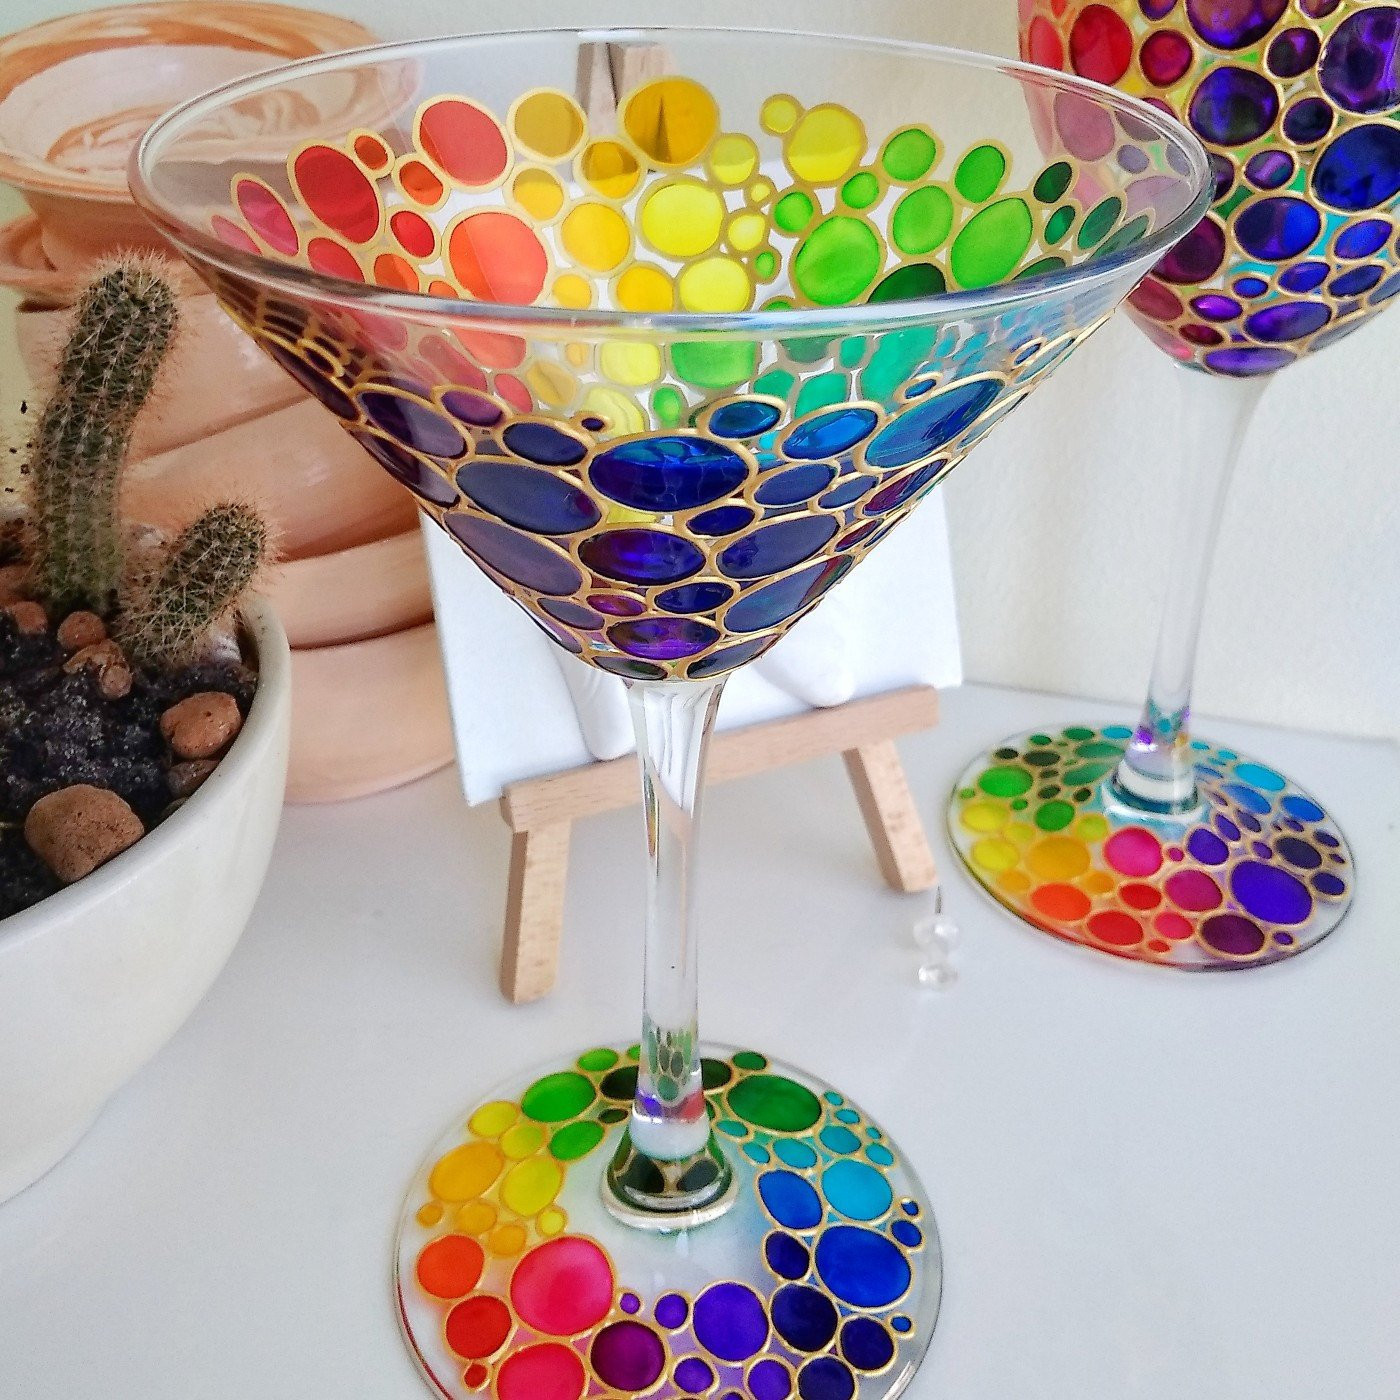 jumbo martini glass vase of updates from artmasha on etsy in rainbow painted wine glass click to view listing